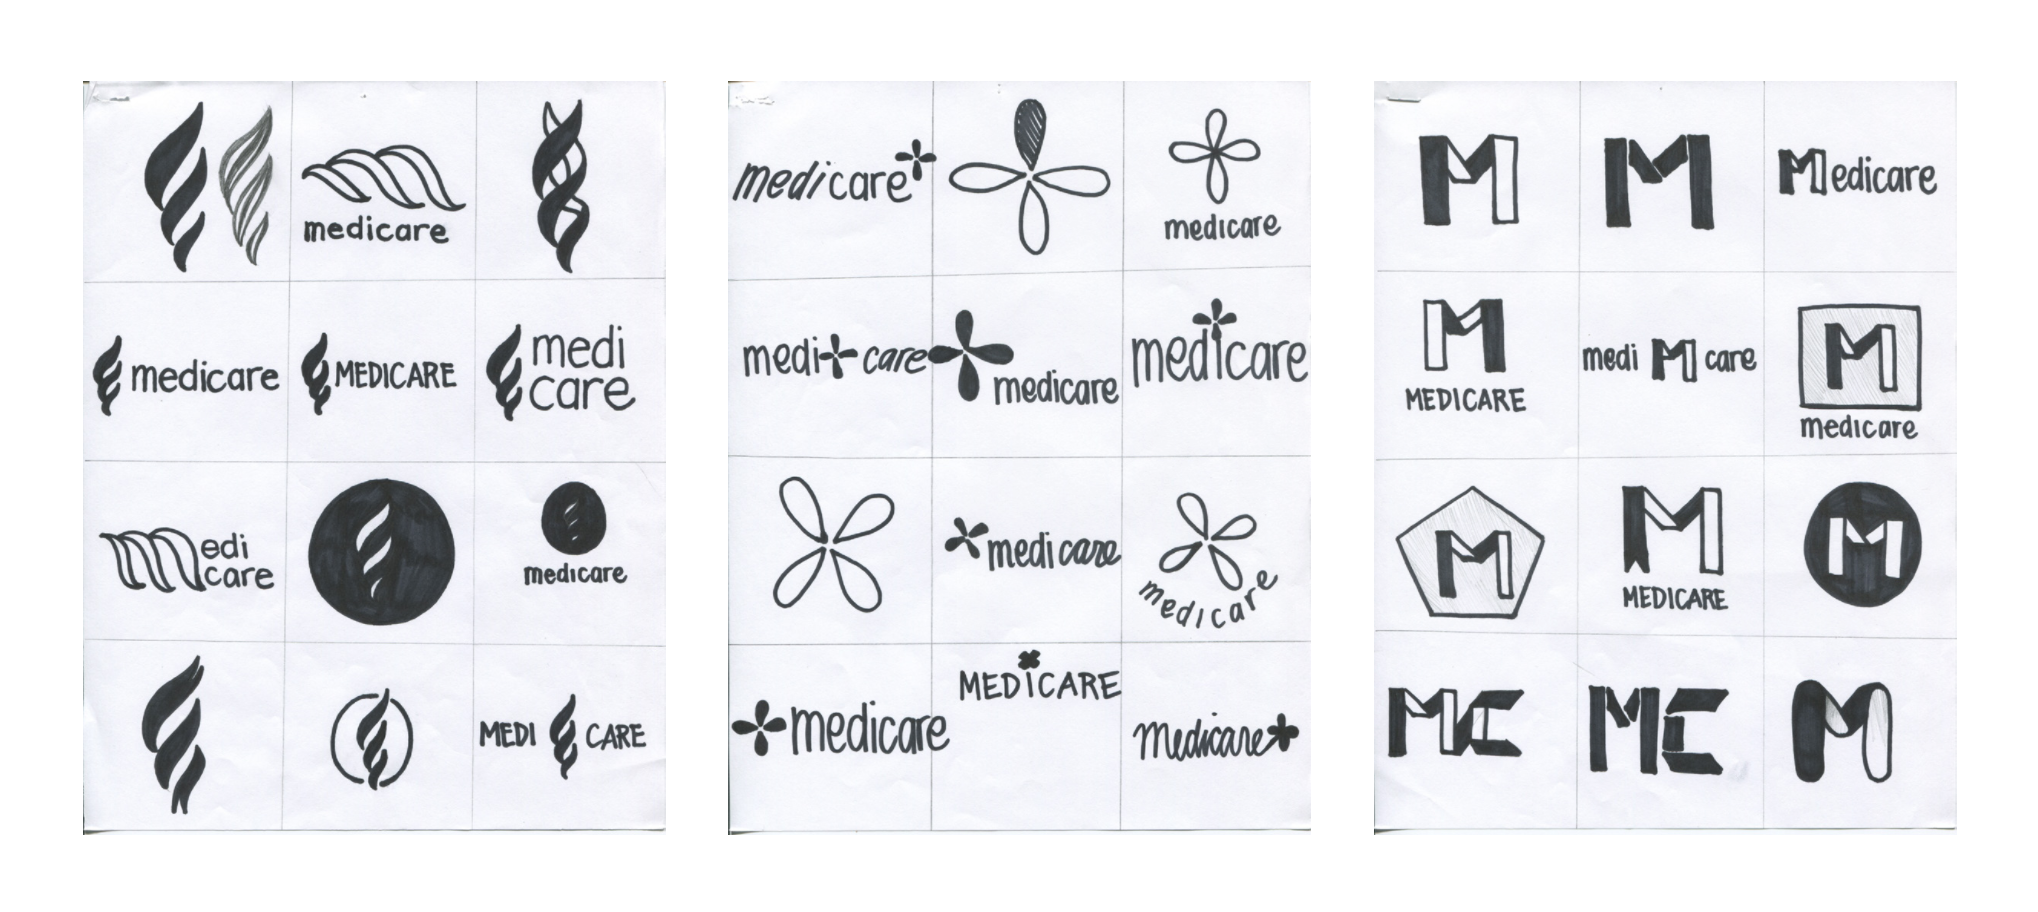 Based upon peer critiques, I chose three directions to experiment with. Keeping my key attributes and mission in mind, I sketched symbols with subtle references to a torch, medical cross, and the four parts of Medicare. At this stage, I kept the sketches loose to get a feel for the shapes I wanted.